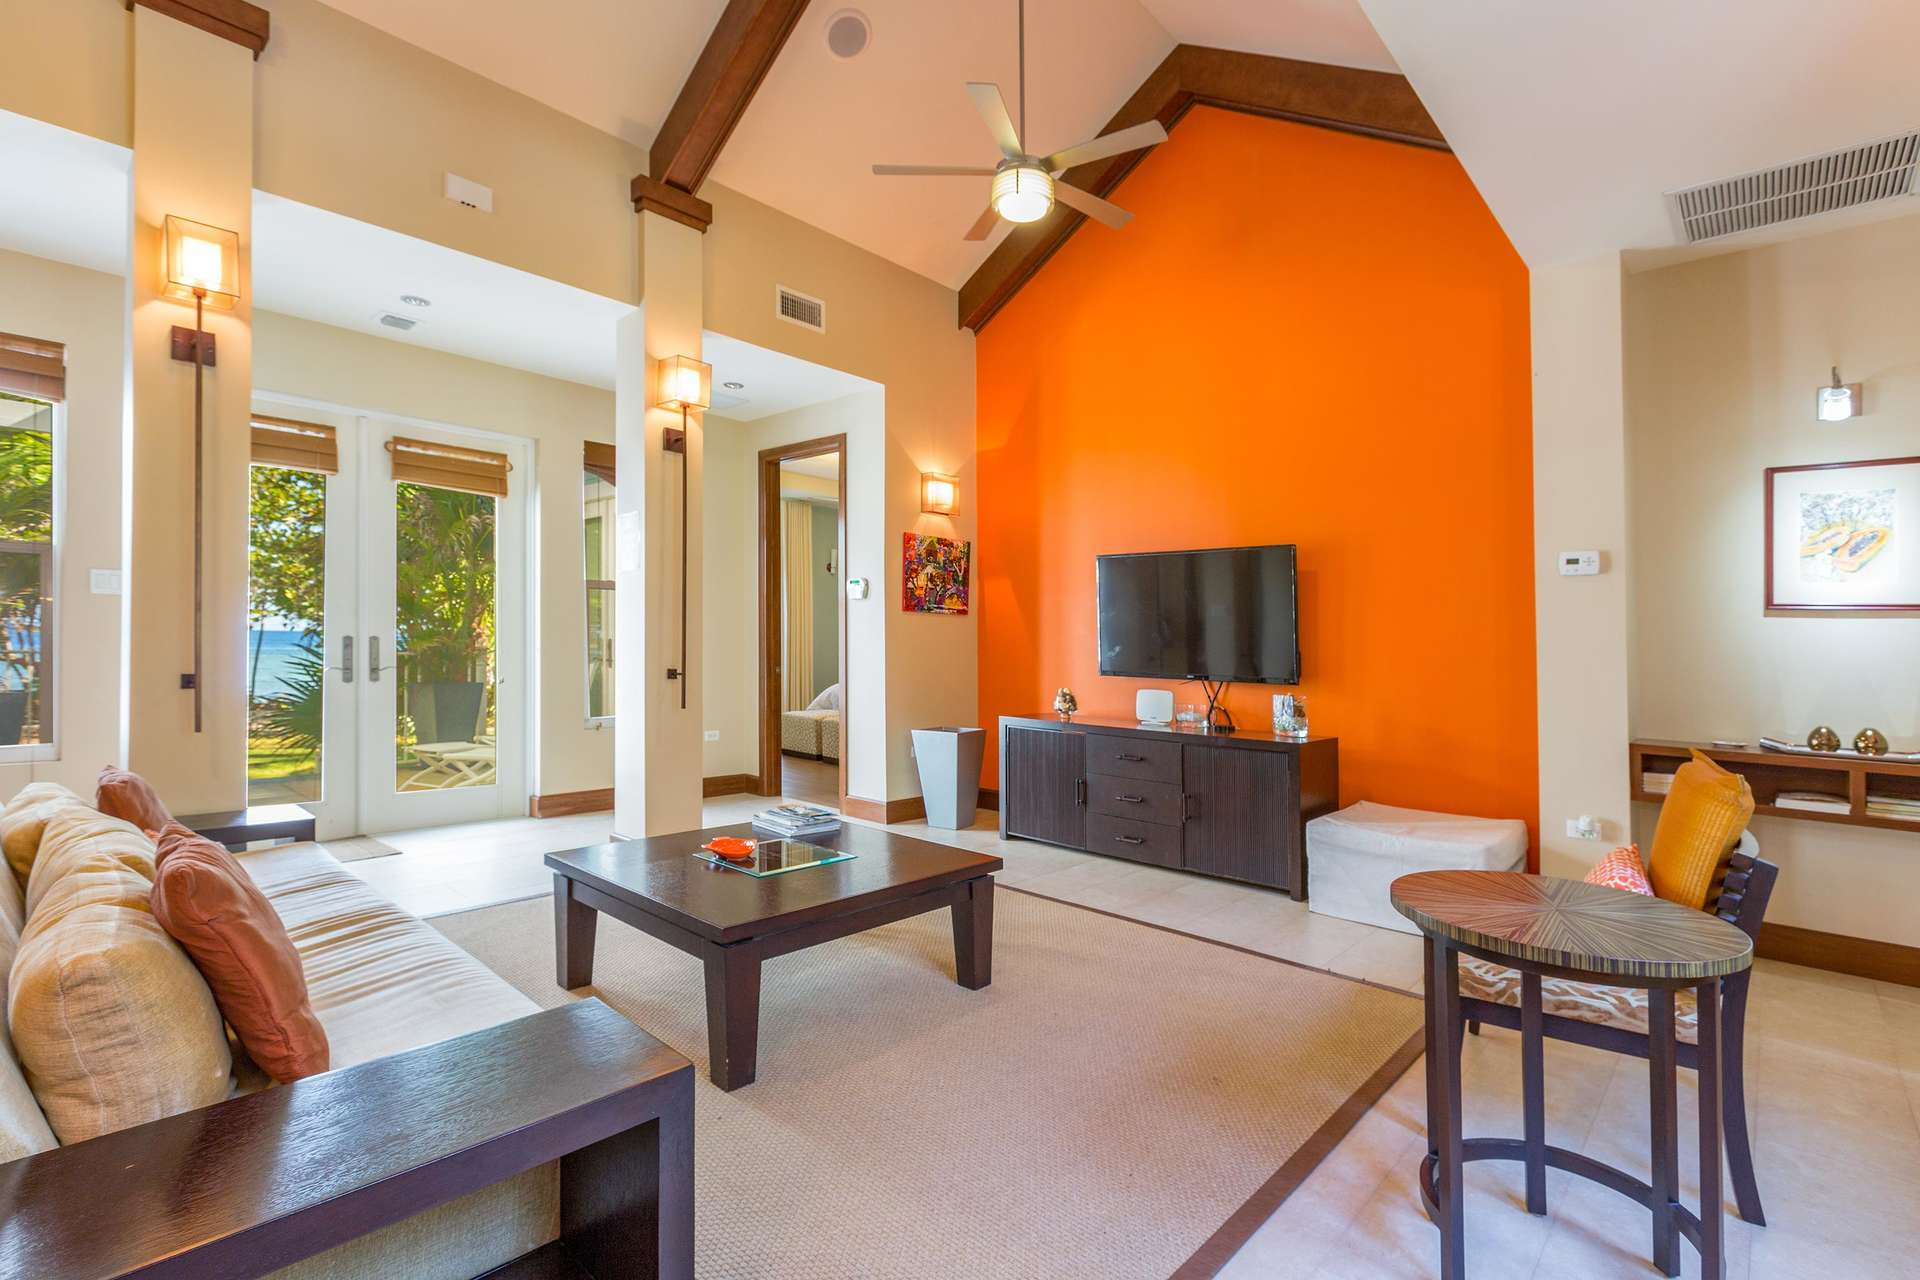 Luxury villa rentals caribbean - Cayman islands - Grand cayman - West bay - Papaya Cottage - Image 1/29